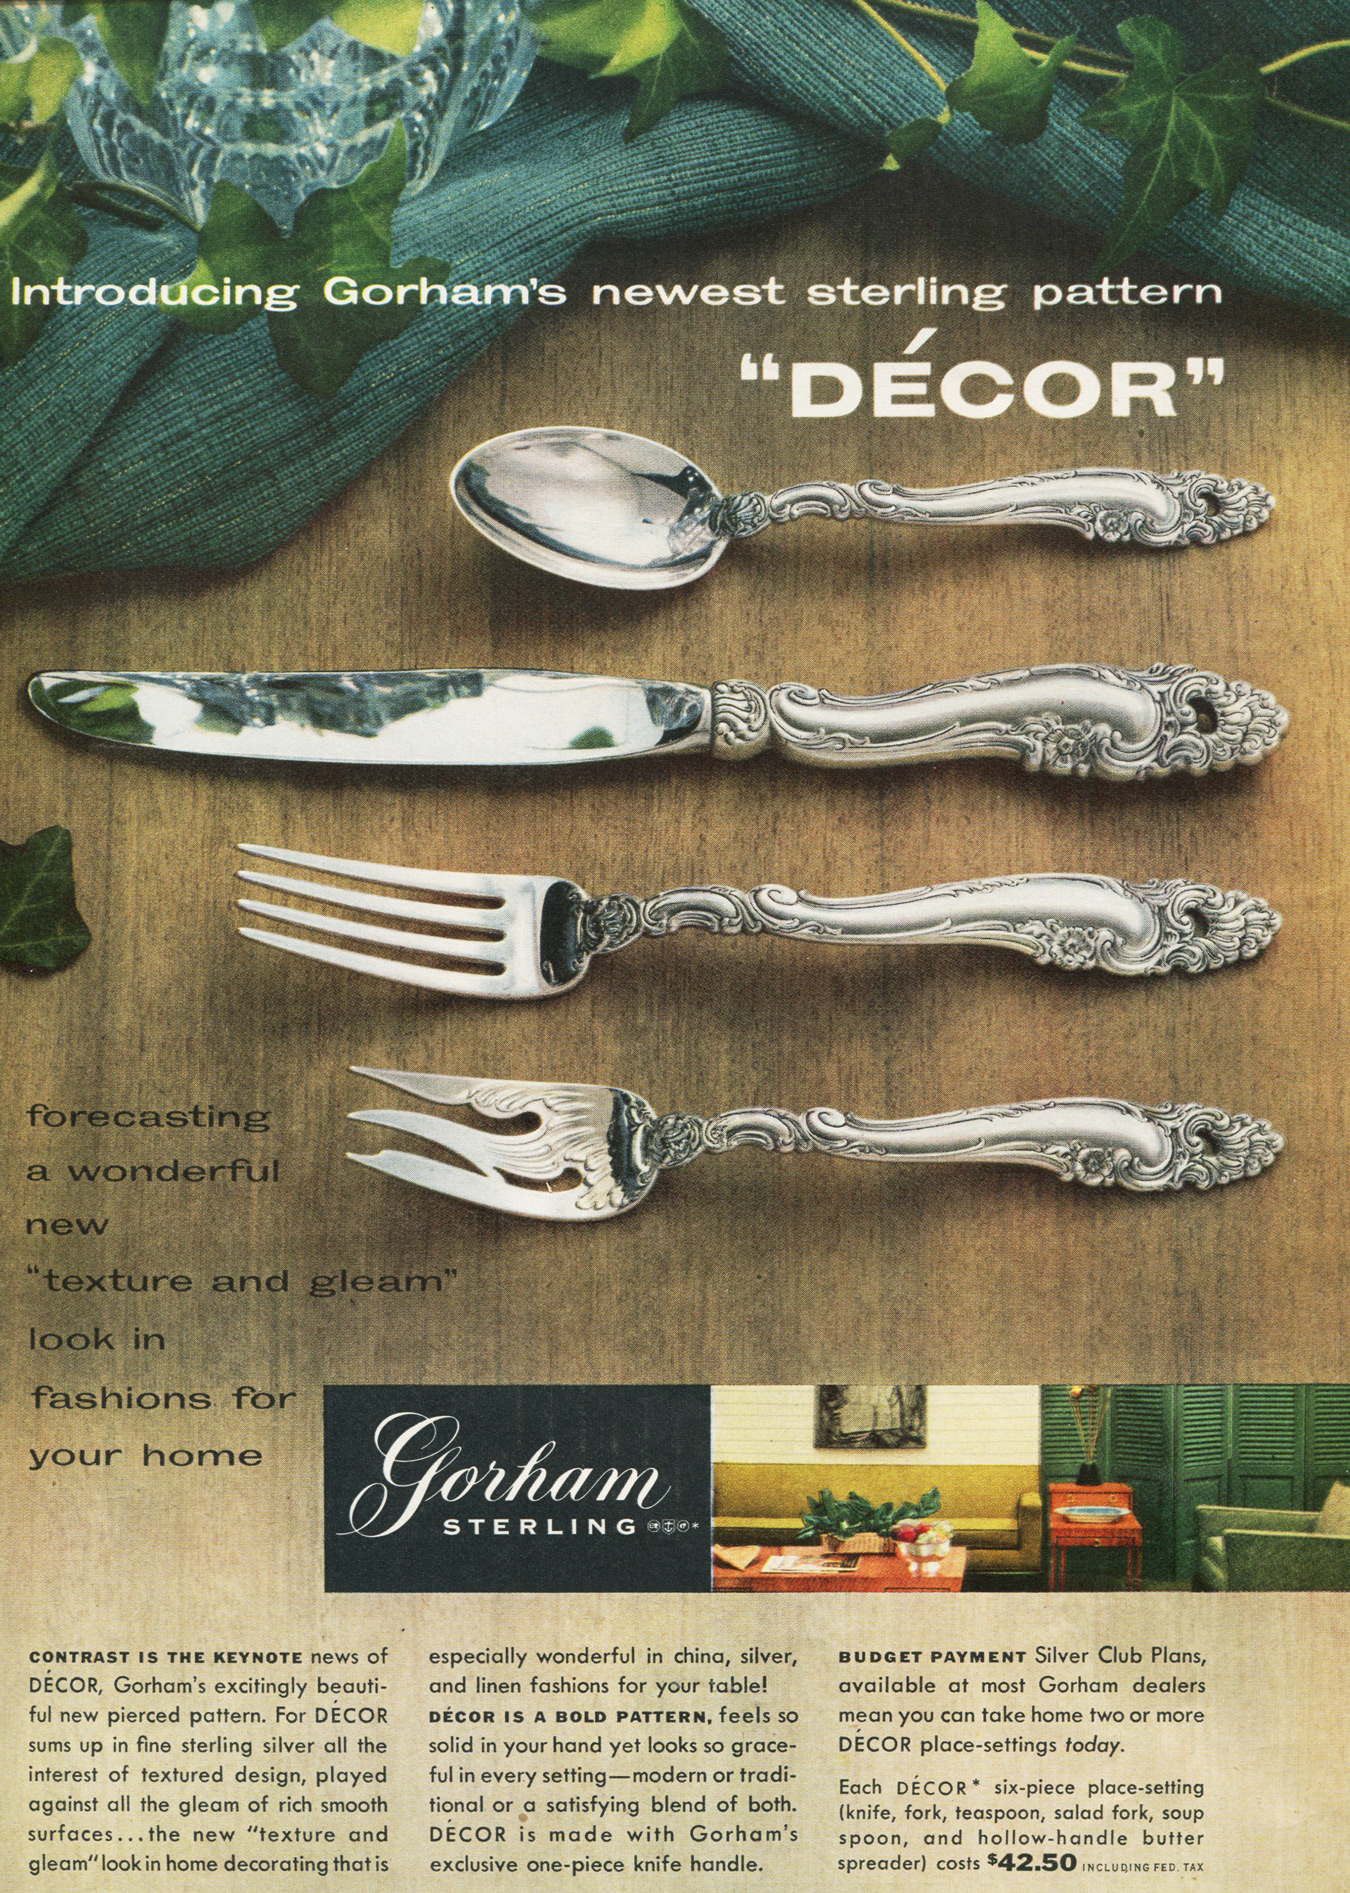 Decor 1950s advertisement